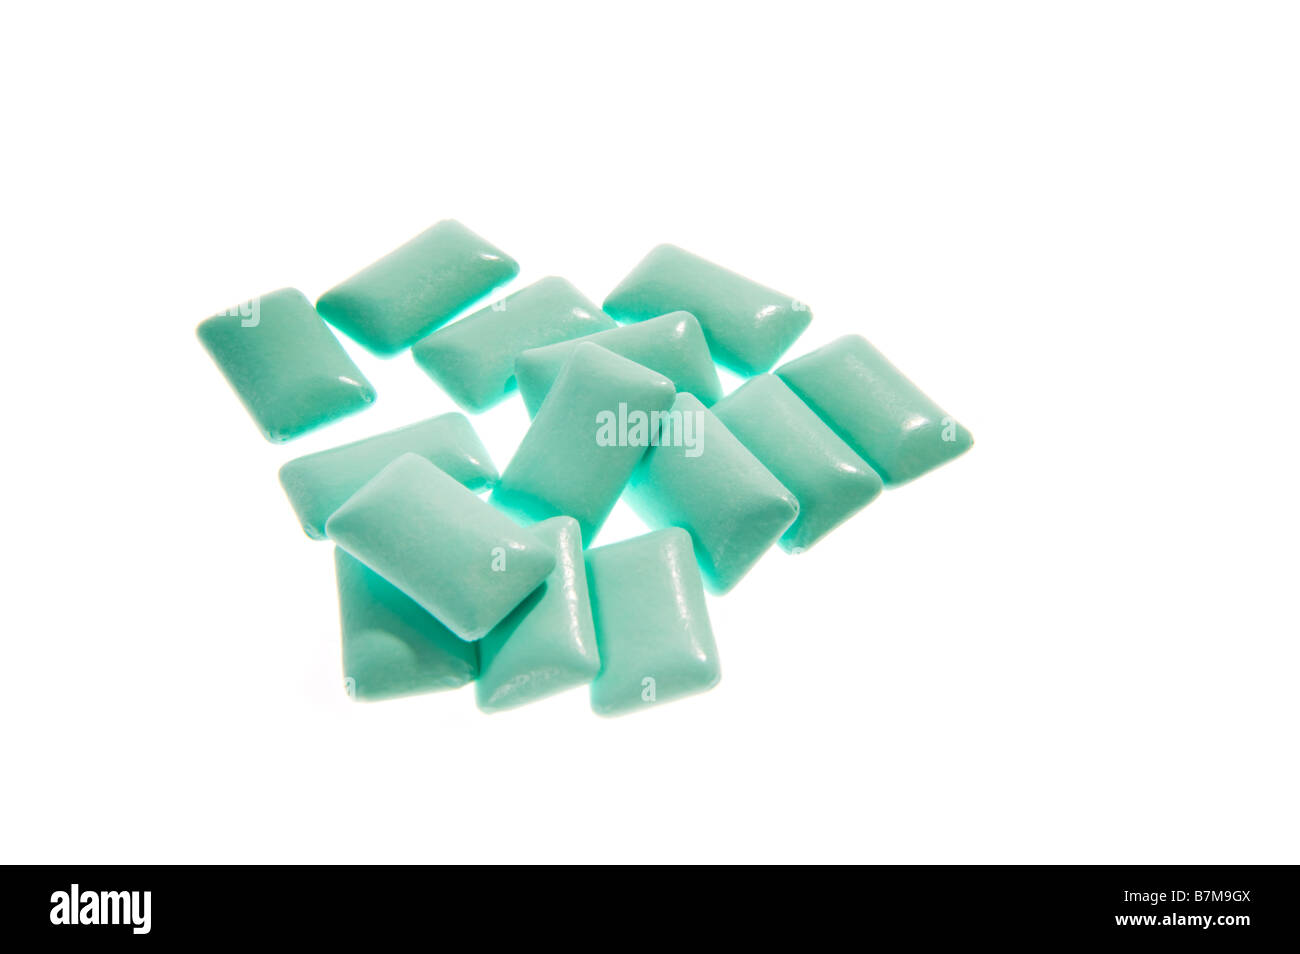 chewing gum bubble gum grenn blue cyan on white background pieces jelly baby candy jelly babies gum gummi fresh - Stock Image